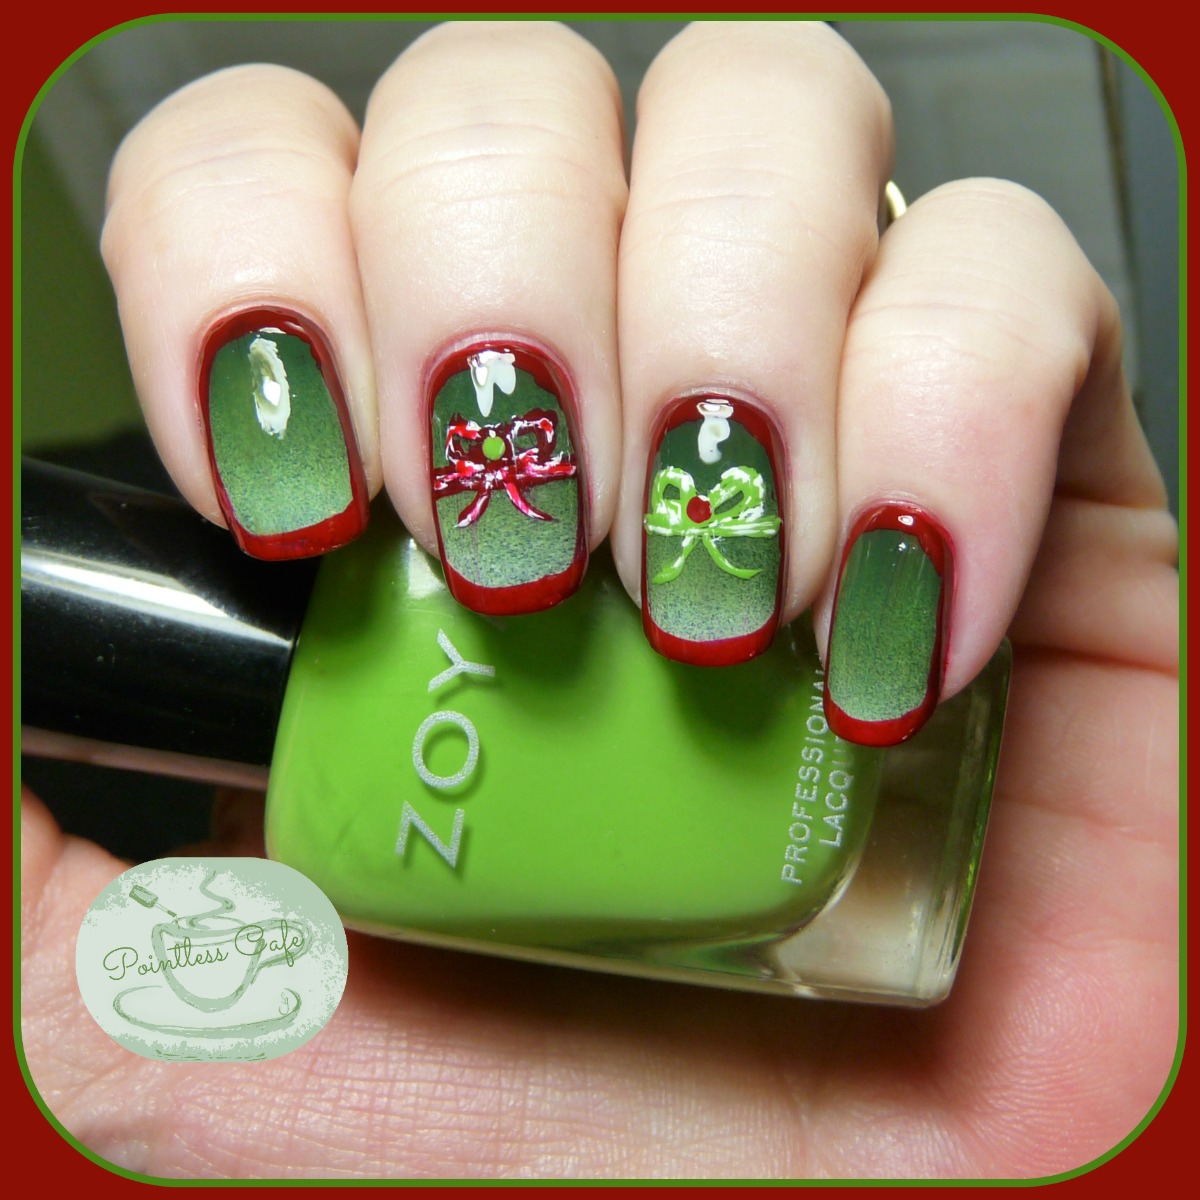 HPB Presents: Holiday Nail Art! - Pretty Packages | Pointless Cafe